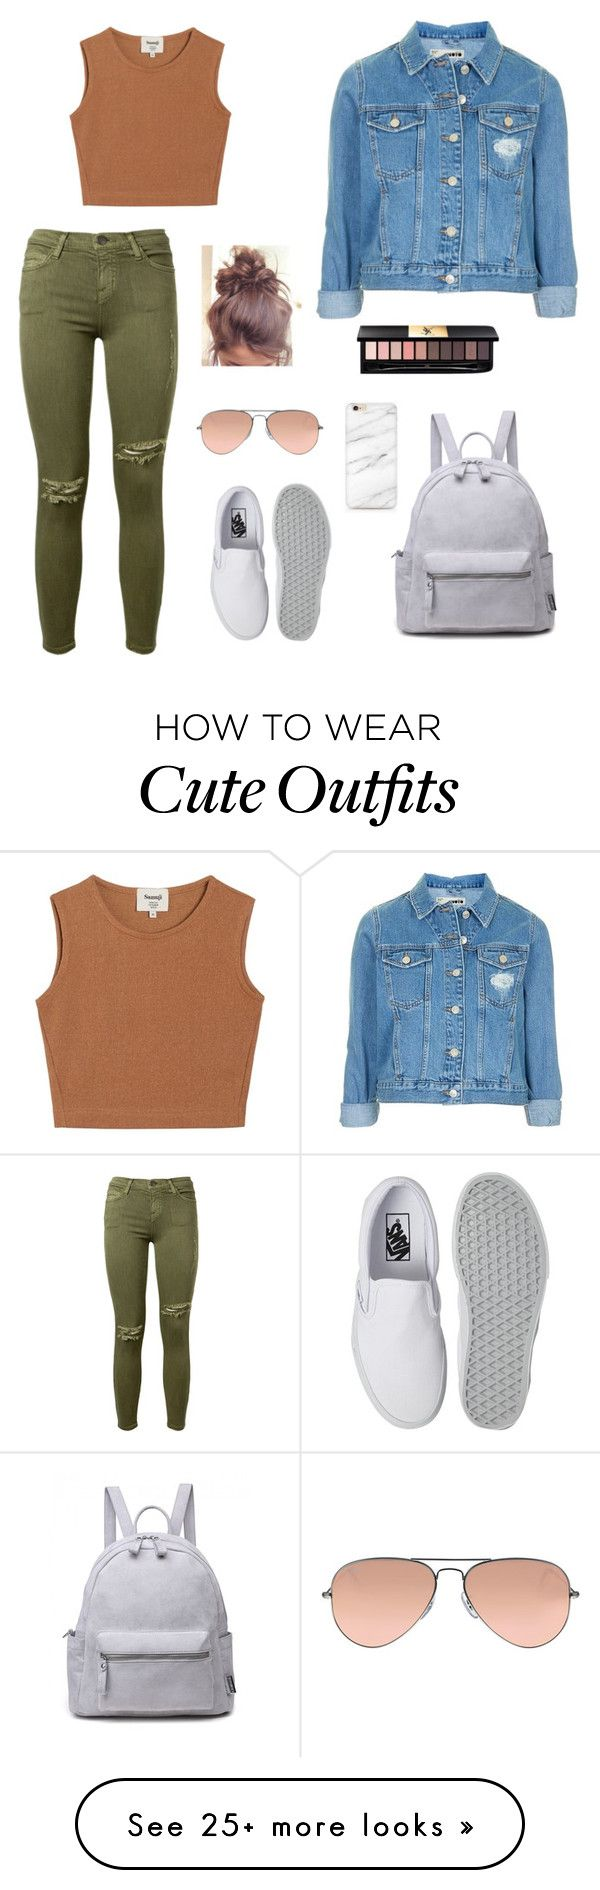 """School outfits"" by fadeintofashion-1 on Polyvore featuring Current/Elliott, Samuji, Topshop, Vans, Ray-Ban and Yves Saint Laurent"